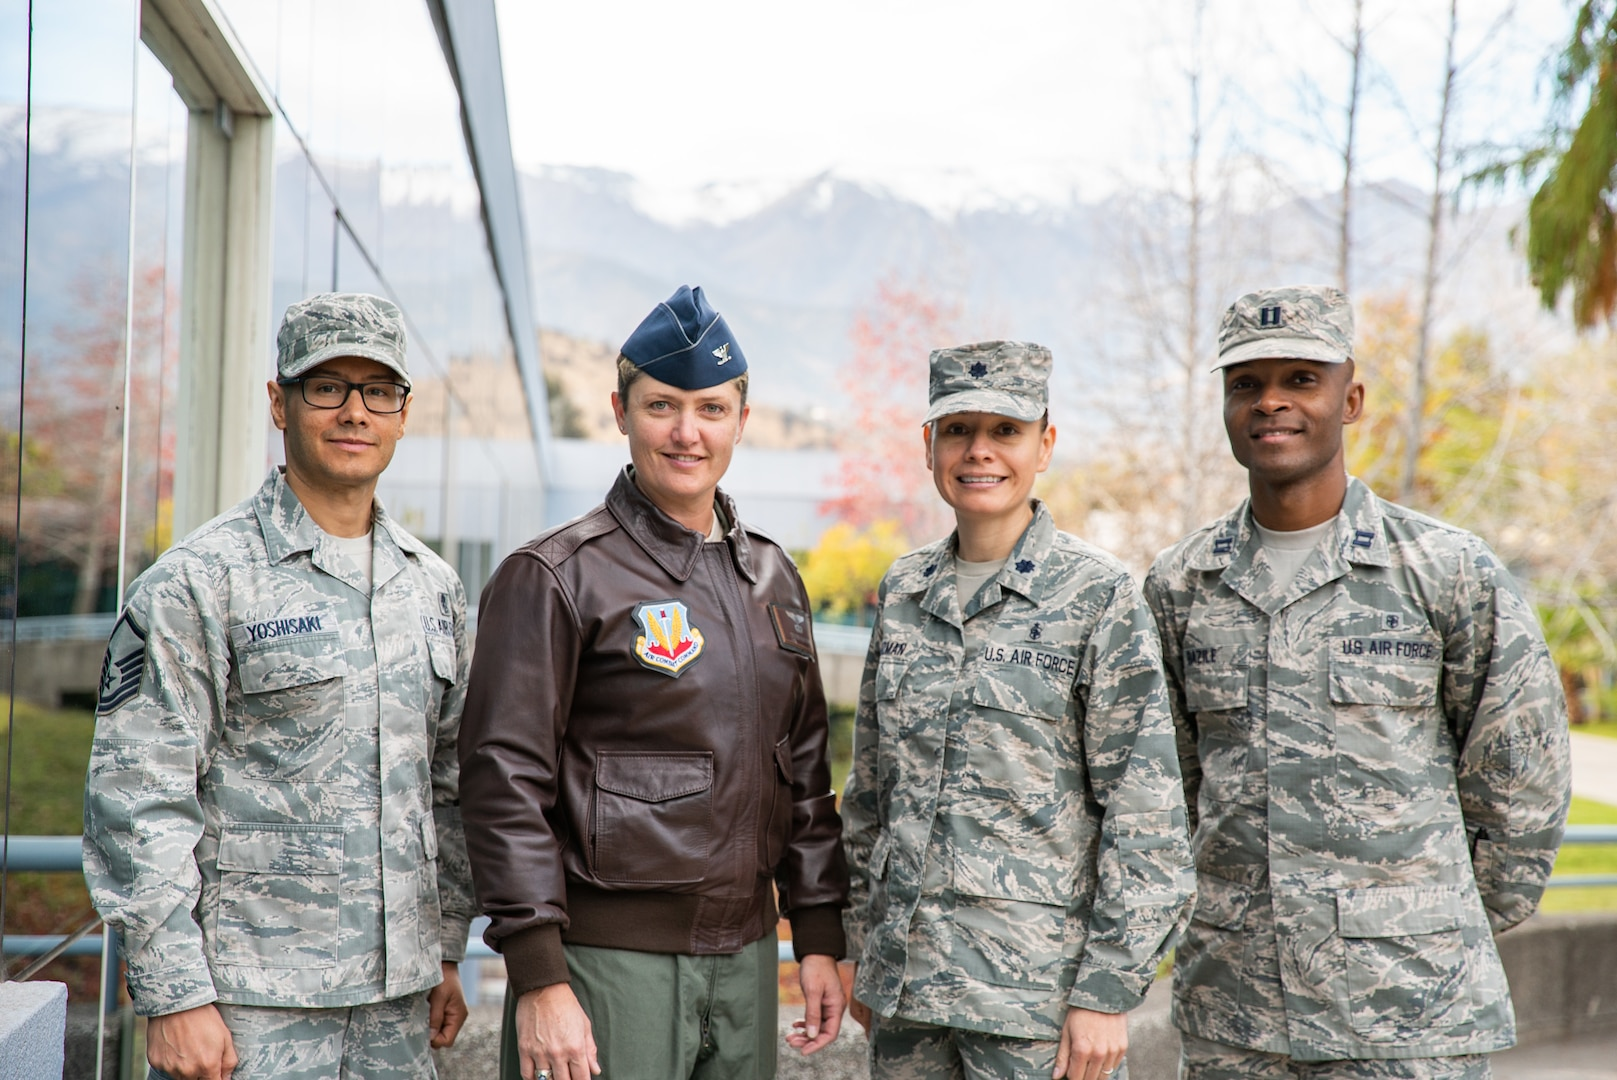 Master Sgt. Diego Yoshisaki, 12th Air Force (AFSOUTH) international health specialist, Davis-Monthan AFB, Ariz., Col. Colleen McBratney, 355th Aerospace Medicine Squadron Commander, Davis-Monthan AFB, Ariz., Lt. Col. Lisa Guzman, 87th Medical Group medical services administrator, Joint Base McGuire-Dix-Lakehurst, N.J., and Capt. Angelo Bazile, 11th Wing medical services administrator, Joint Base Andrews, Md., pose for a  photo during a health services administration subject matter expert exchange with the Chilean air force at the Hospital Clínico, Santiago, June 4-8. Key U.S. and Chilean air force military health specialists discussed ways to improve medical administration practices, marking the first time this type of exchange has taken place in Chile. (U.S. Air Force photo by Staff Sgt. Danny Rangel)